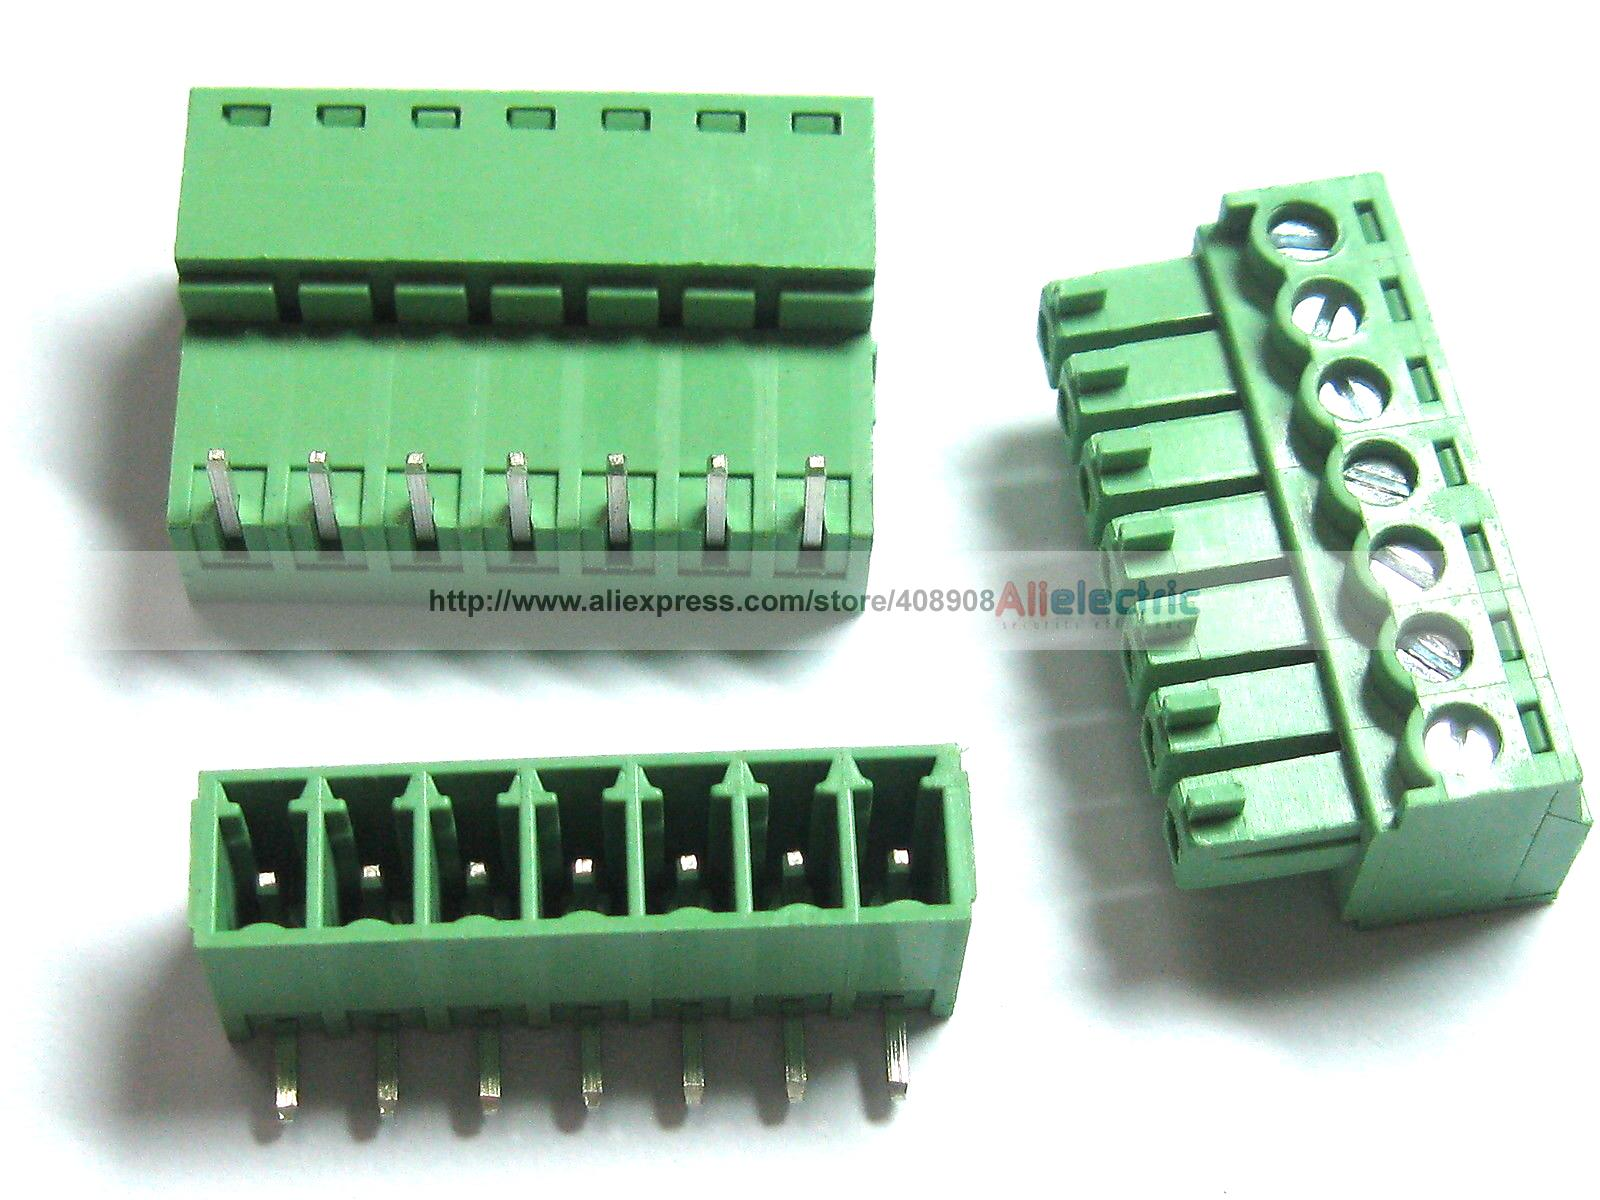 цена на 150 Pcs Screw Terminal Block Connector 3.5mm Angle 7 Pin Green Pluggable Type